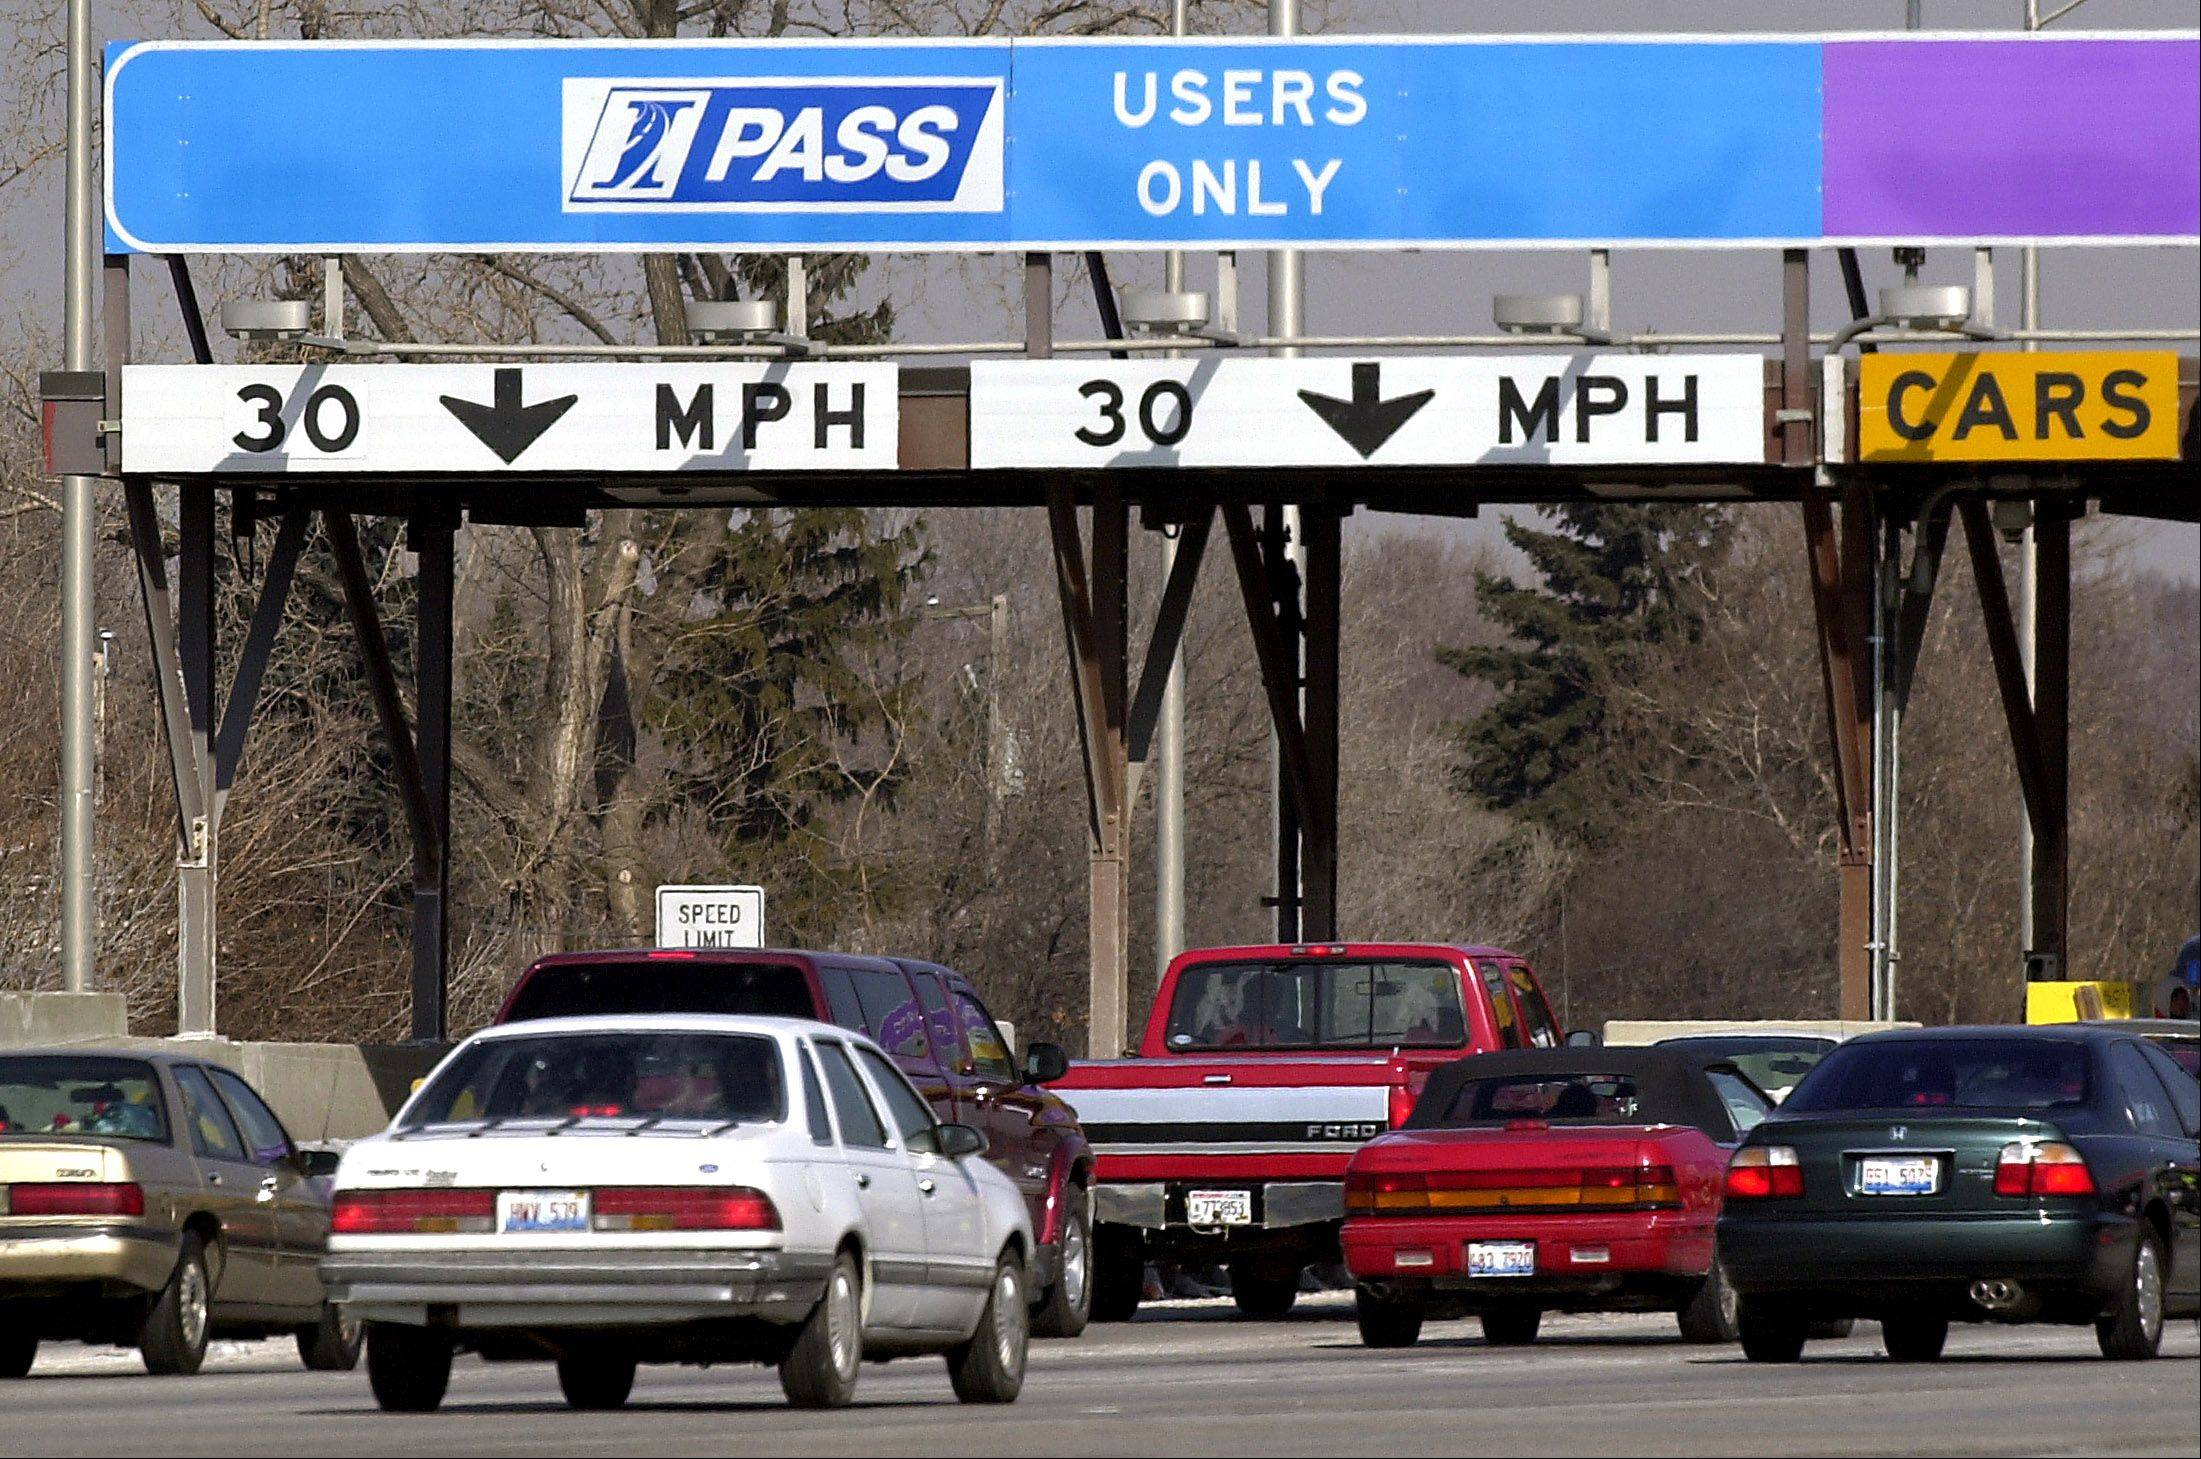 You will have extra time to pay that painful $20 fine for skipping a toll payment.